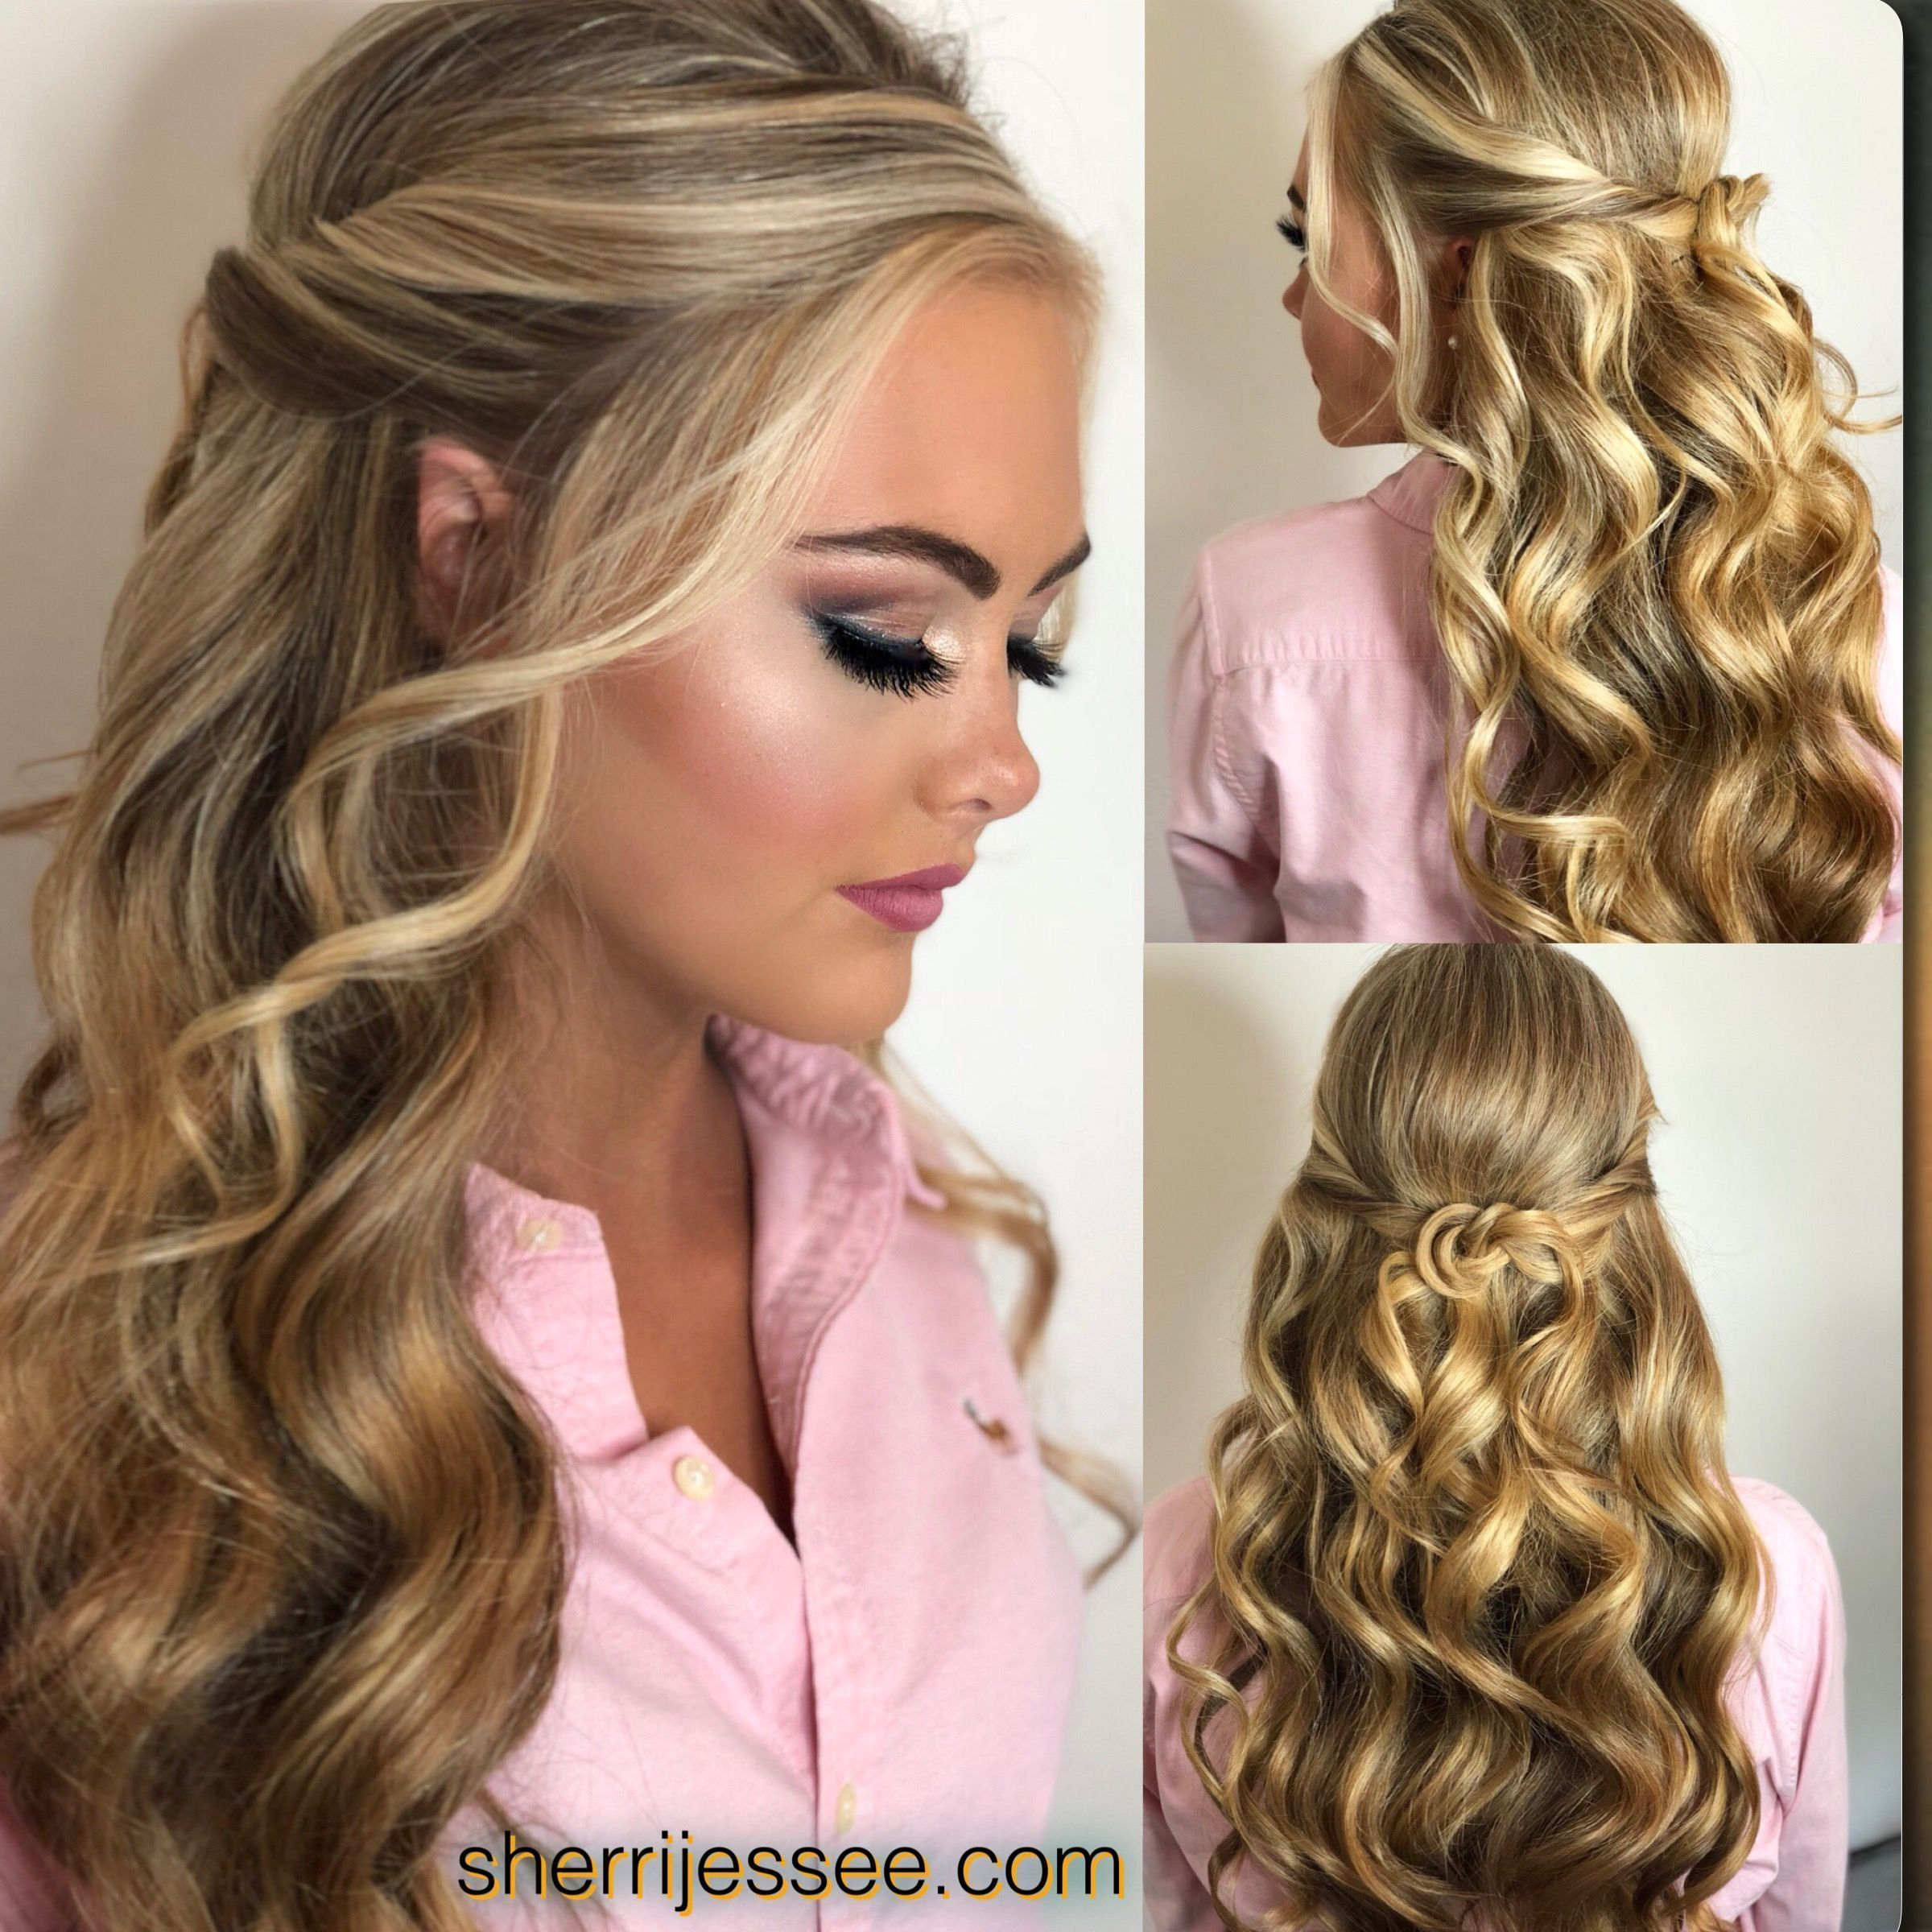 Hairstyles Prom Hairstyles For Long Hair Half Up Half Down Most